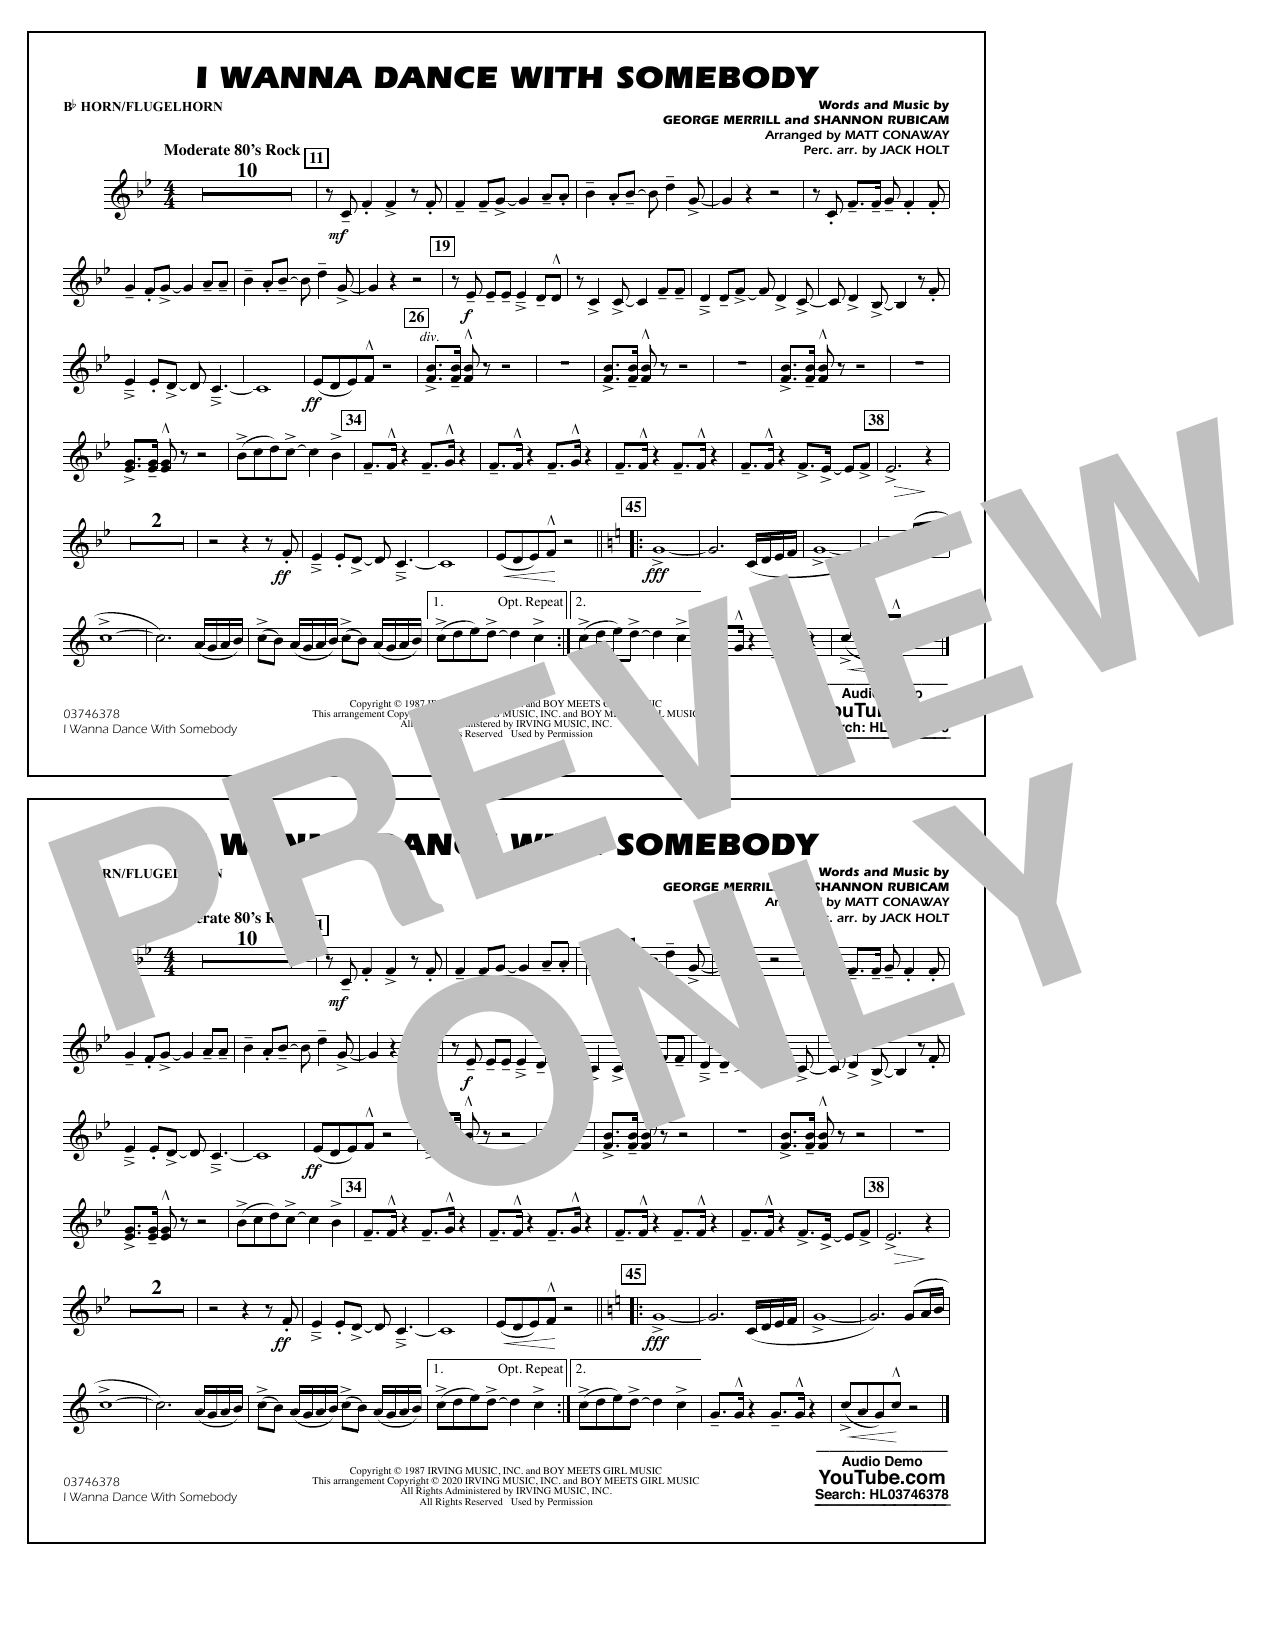 Whitney Houston I Wanna Dance with Somebody (arr. Conaway and Holt) - Bb Horn/Flugelhorn sheet music notes and chords. Download Printable PDF.